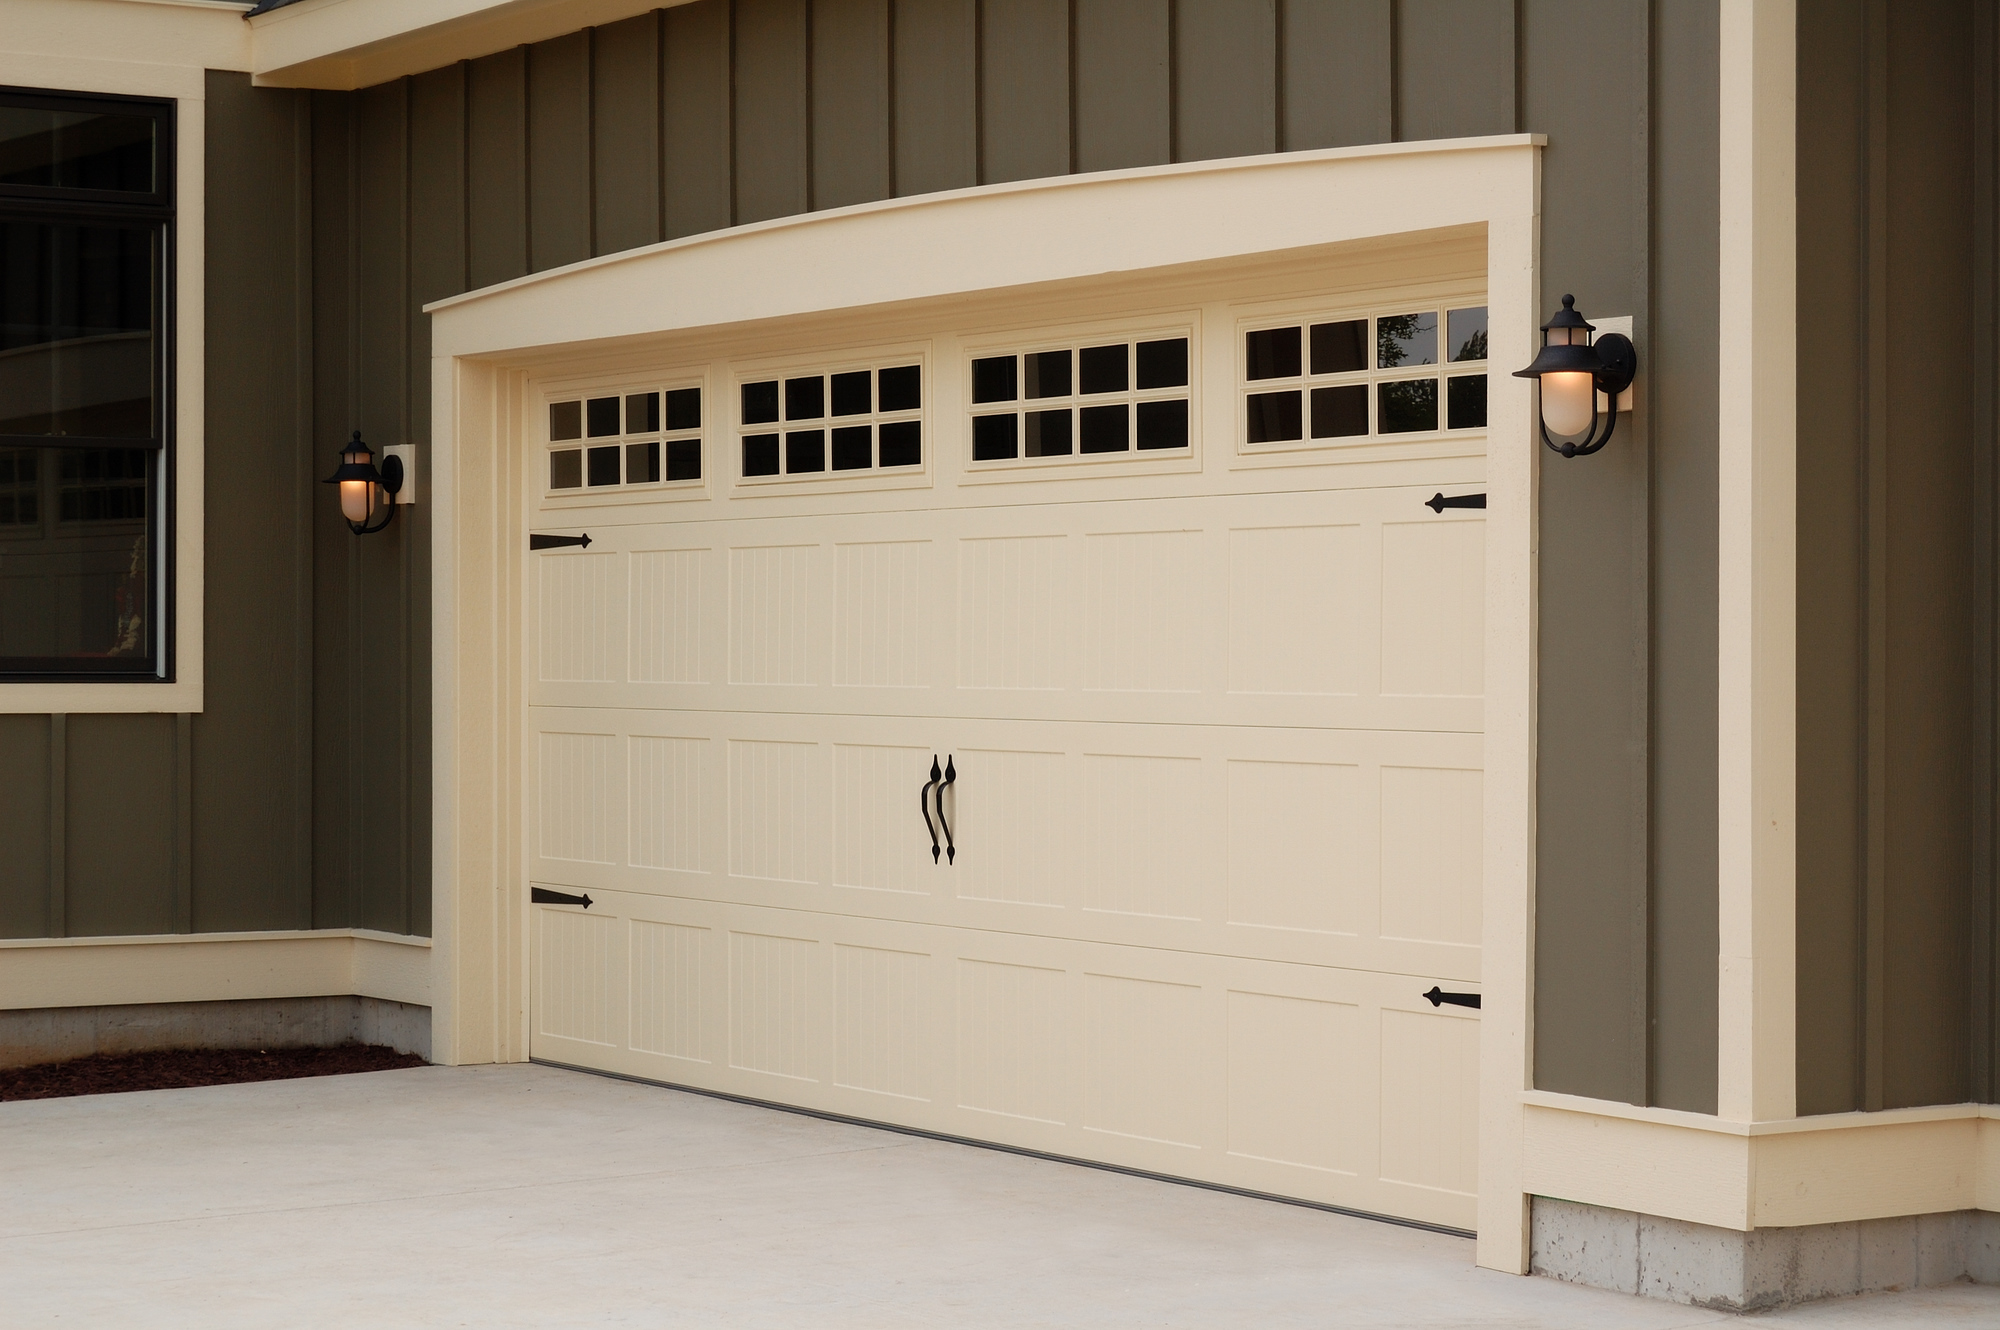 Metro Denver Garage Door, Garage Doors Denver, Denver Garage Door Company, Garage Door Colors, How to Pick a Garage Door Color,